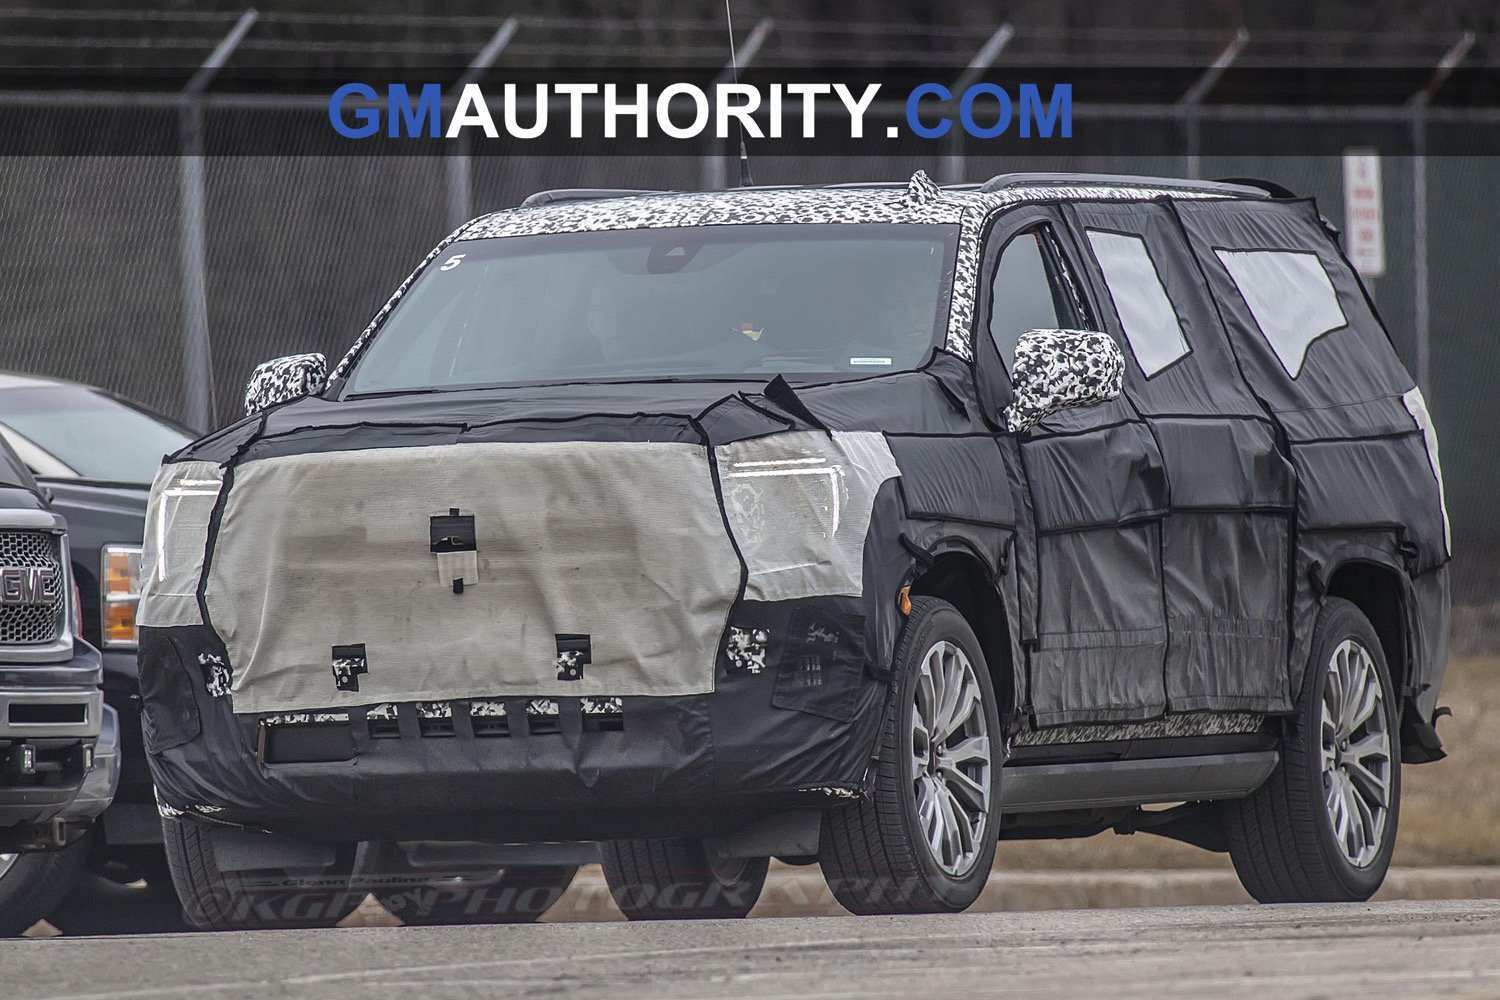 67 A 2020 GMC Yukon Spy Photos Performance